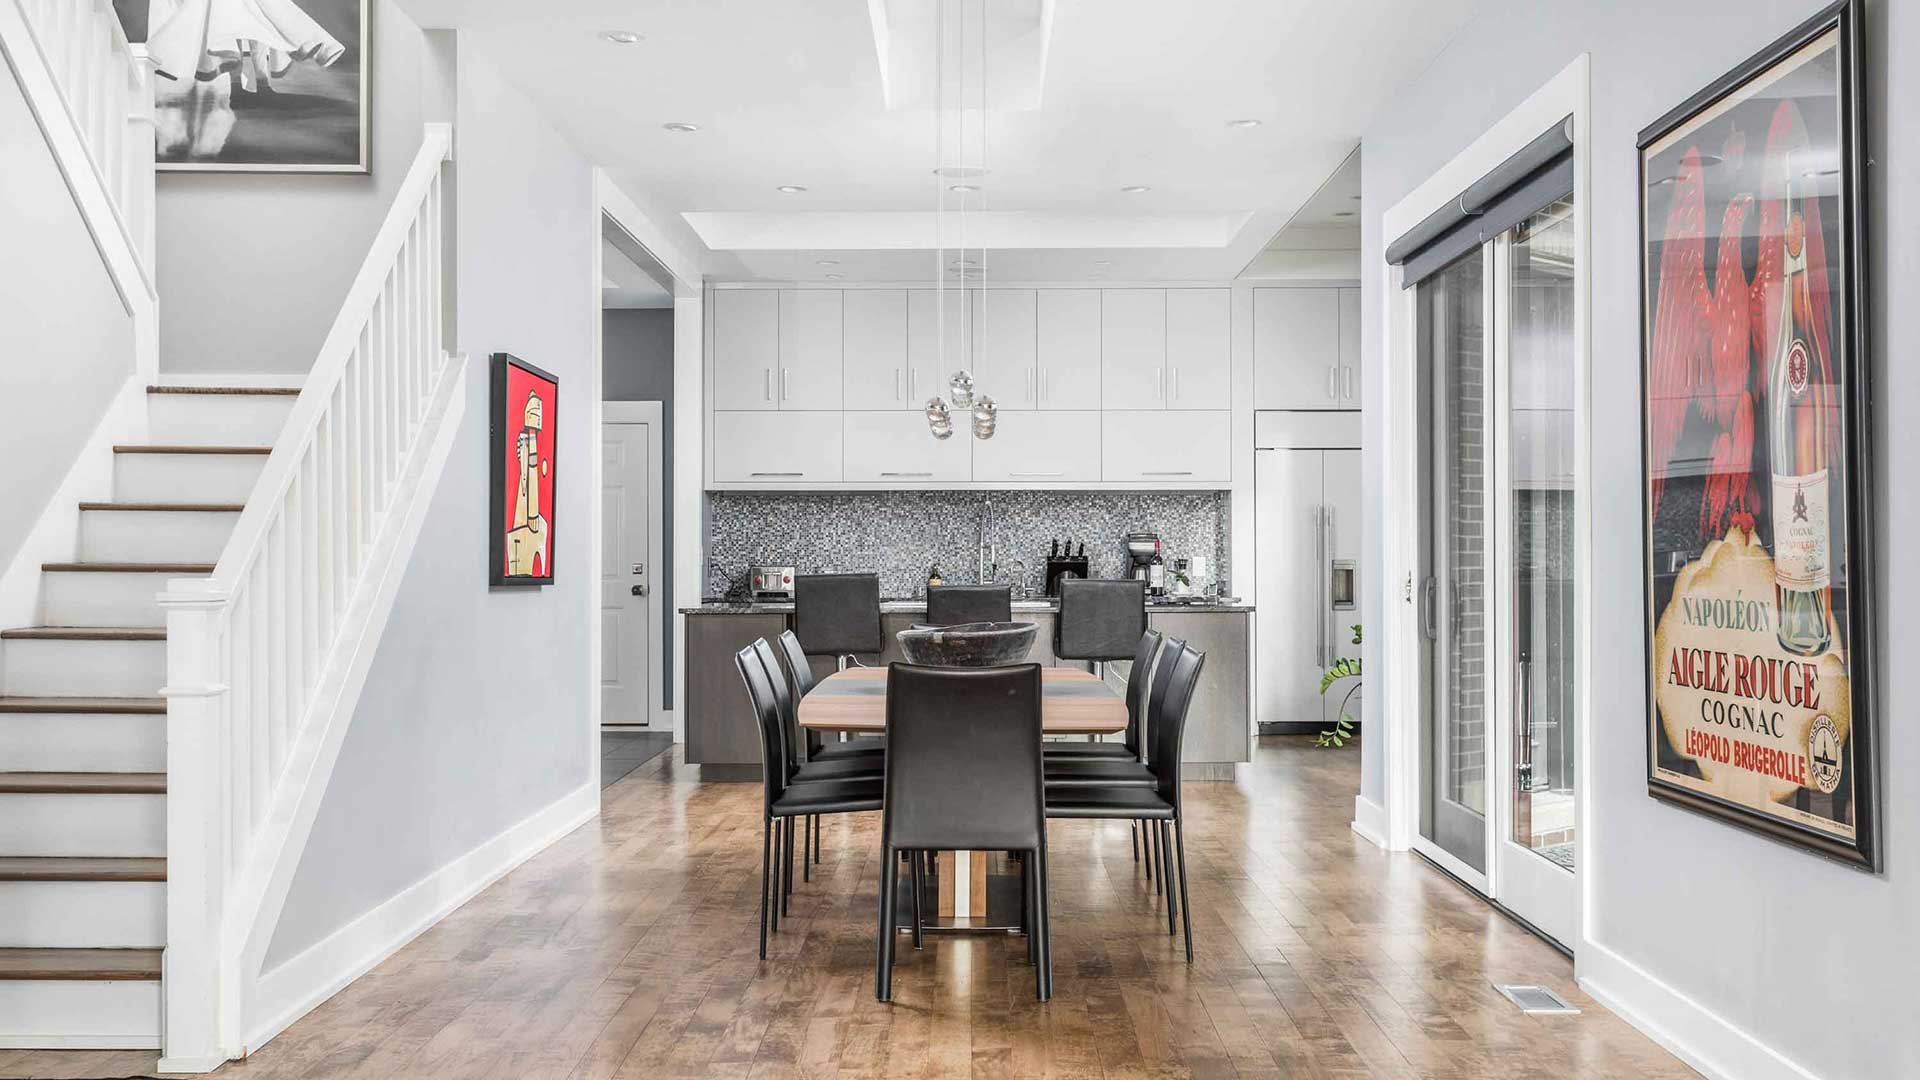 New Modern Kitchen + Dining space with new sliding door in-place of original dark kitchen - Chatham Arch Renovation - Indianapolis, IN